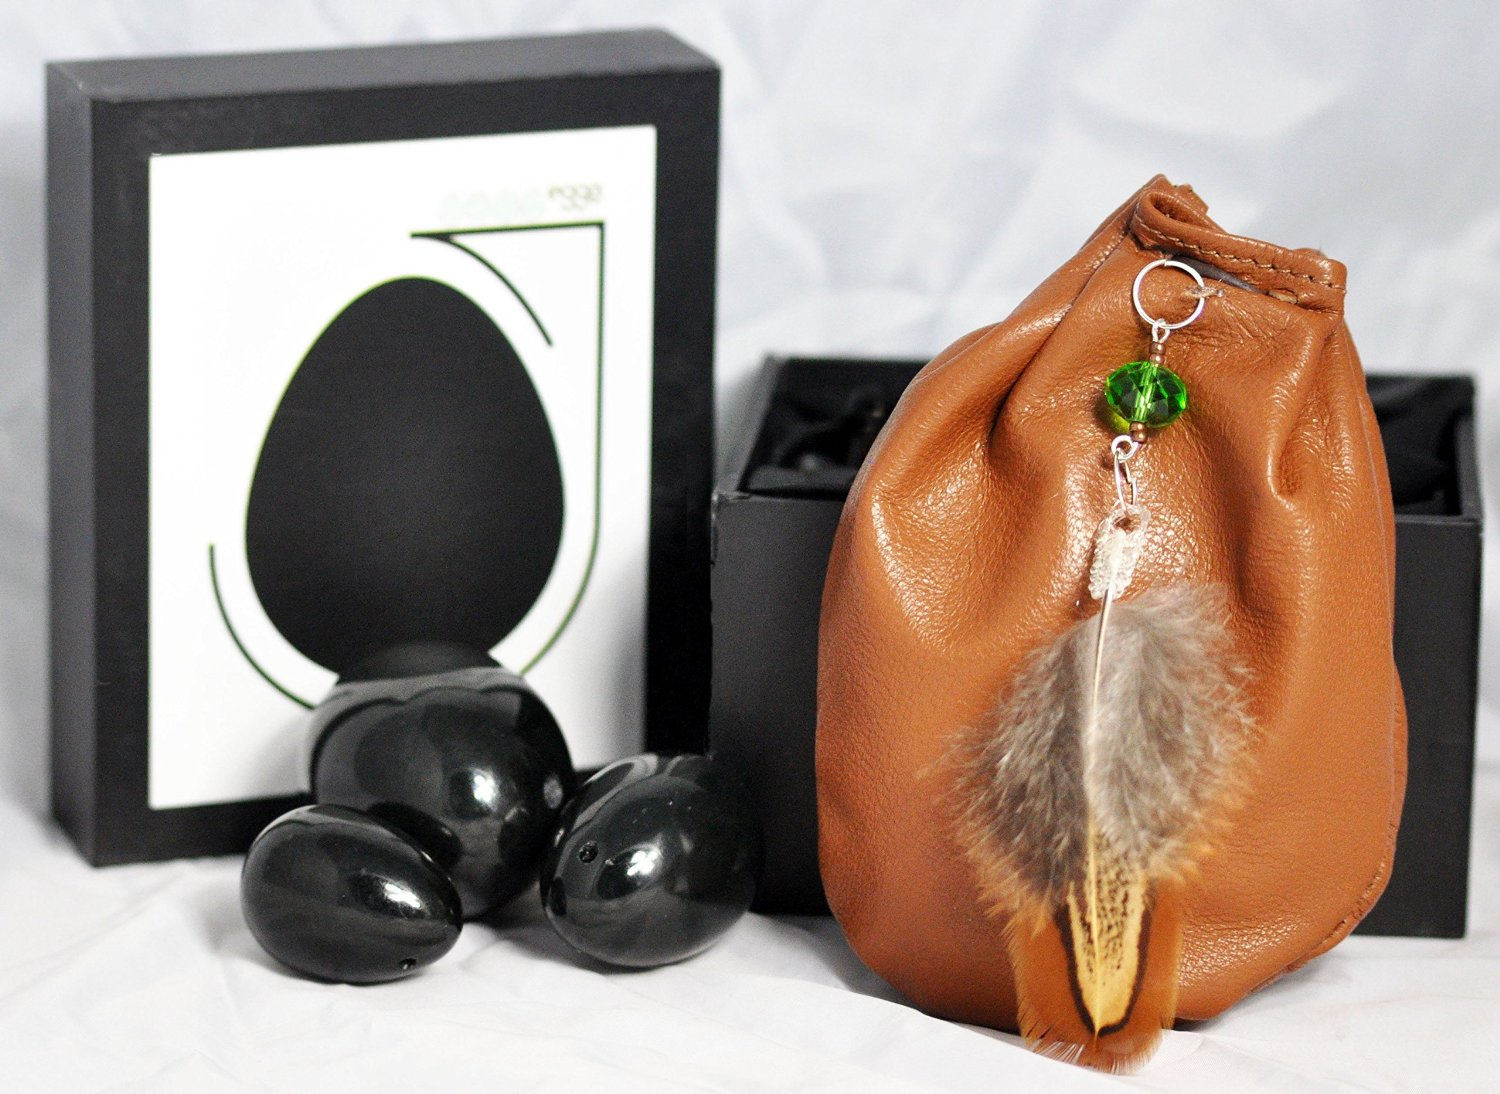 Genuine Hetian Nephrite Jade With Soft Leather Handrafted Weightlifting Pouch